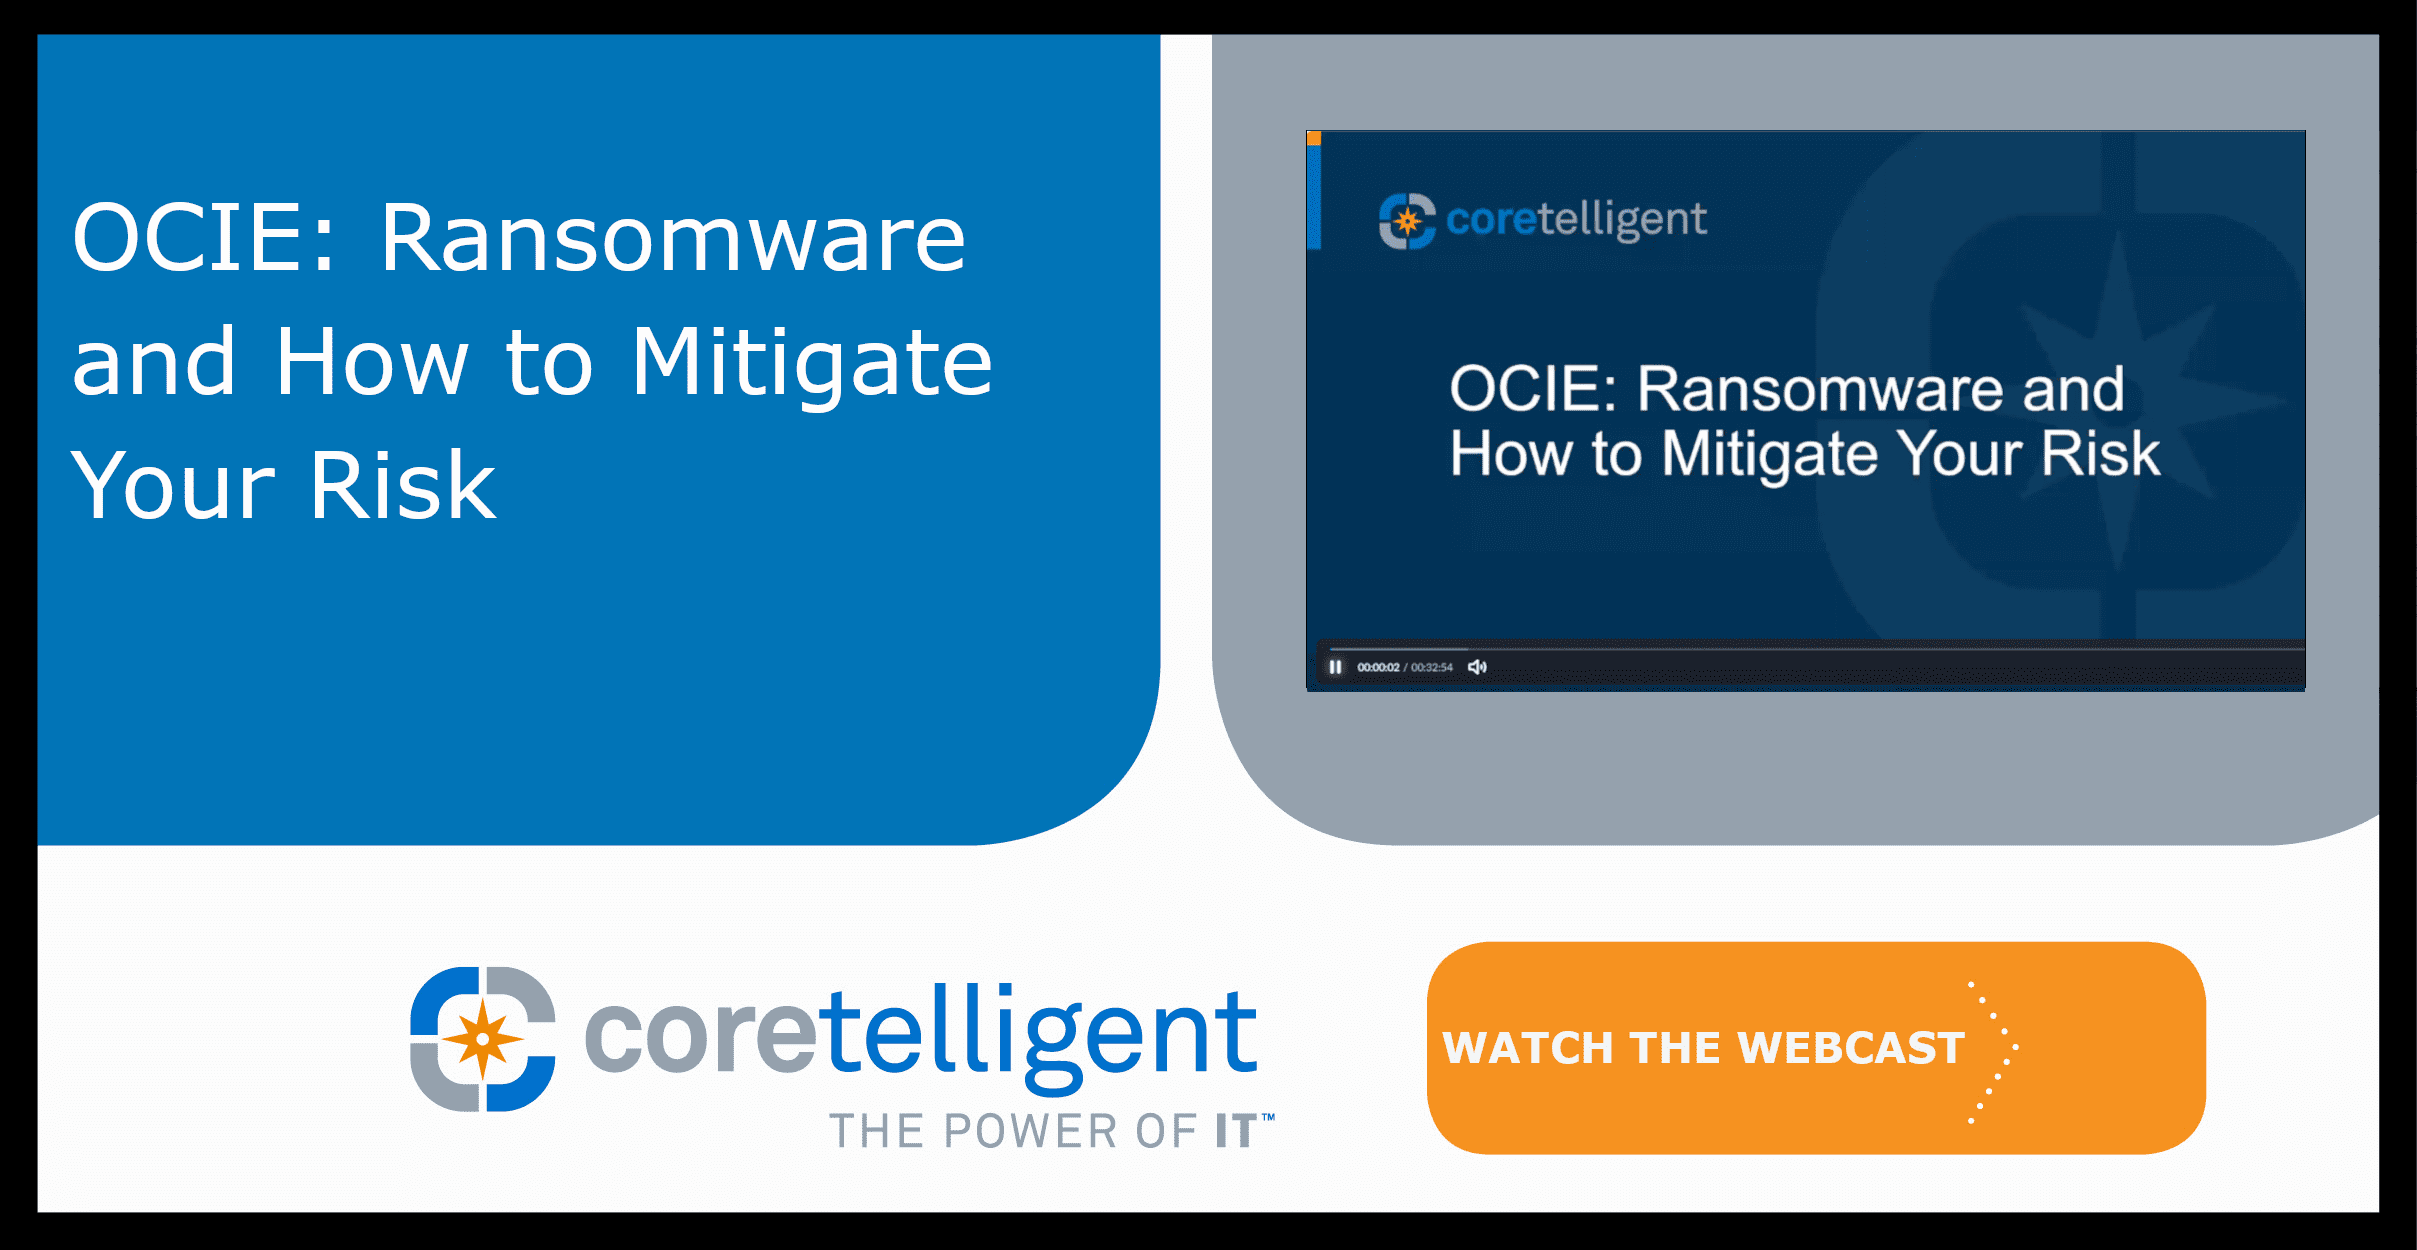 OCIE Ransomware and How to Mitigate Your Risk Webcast